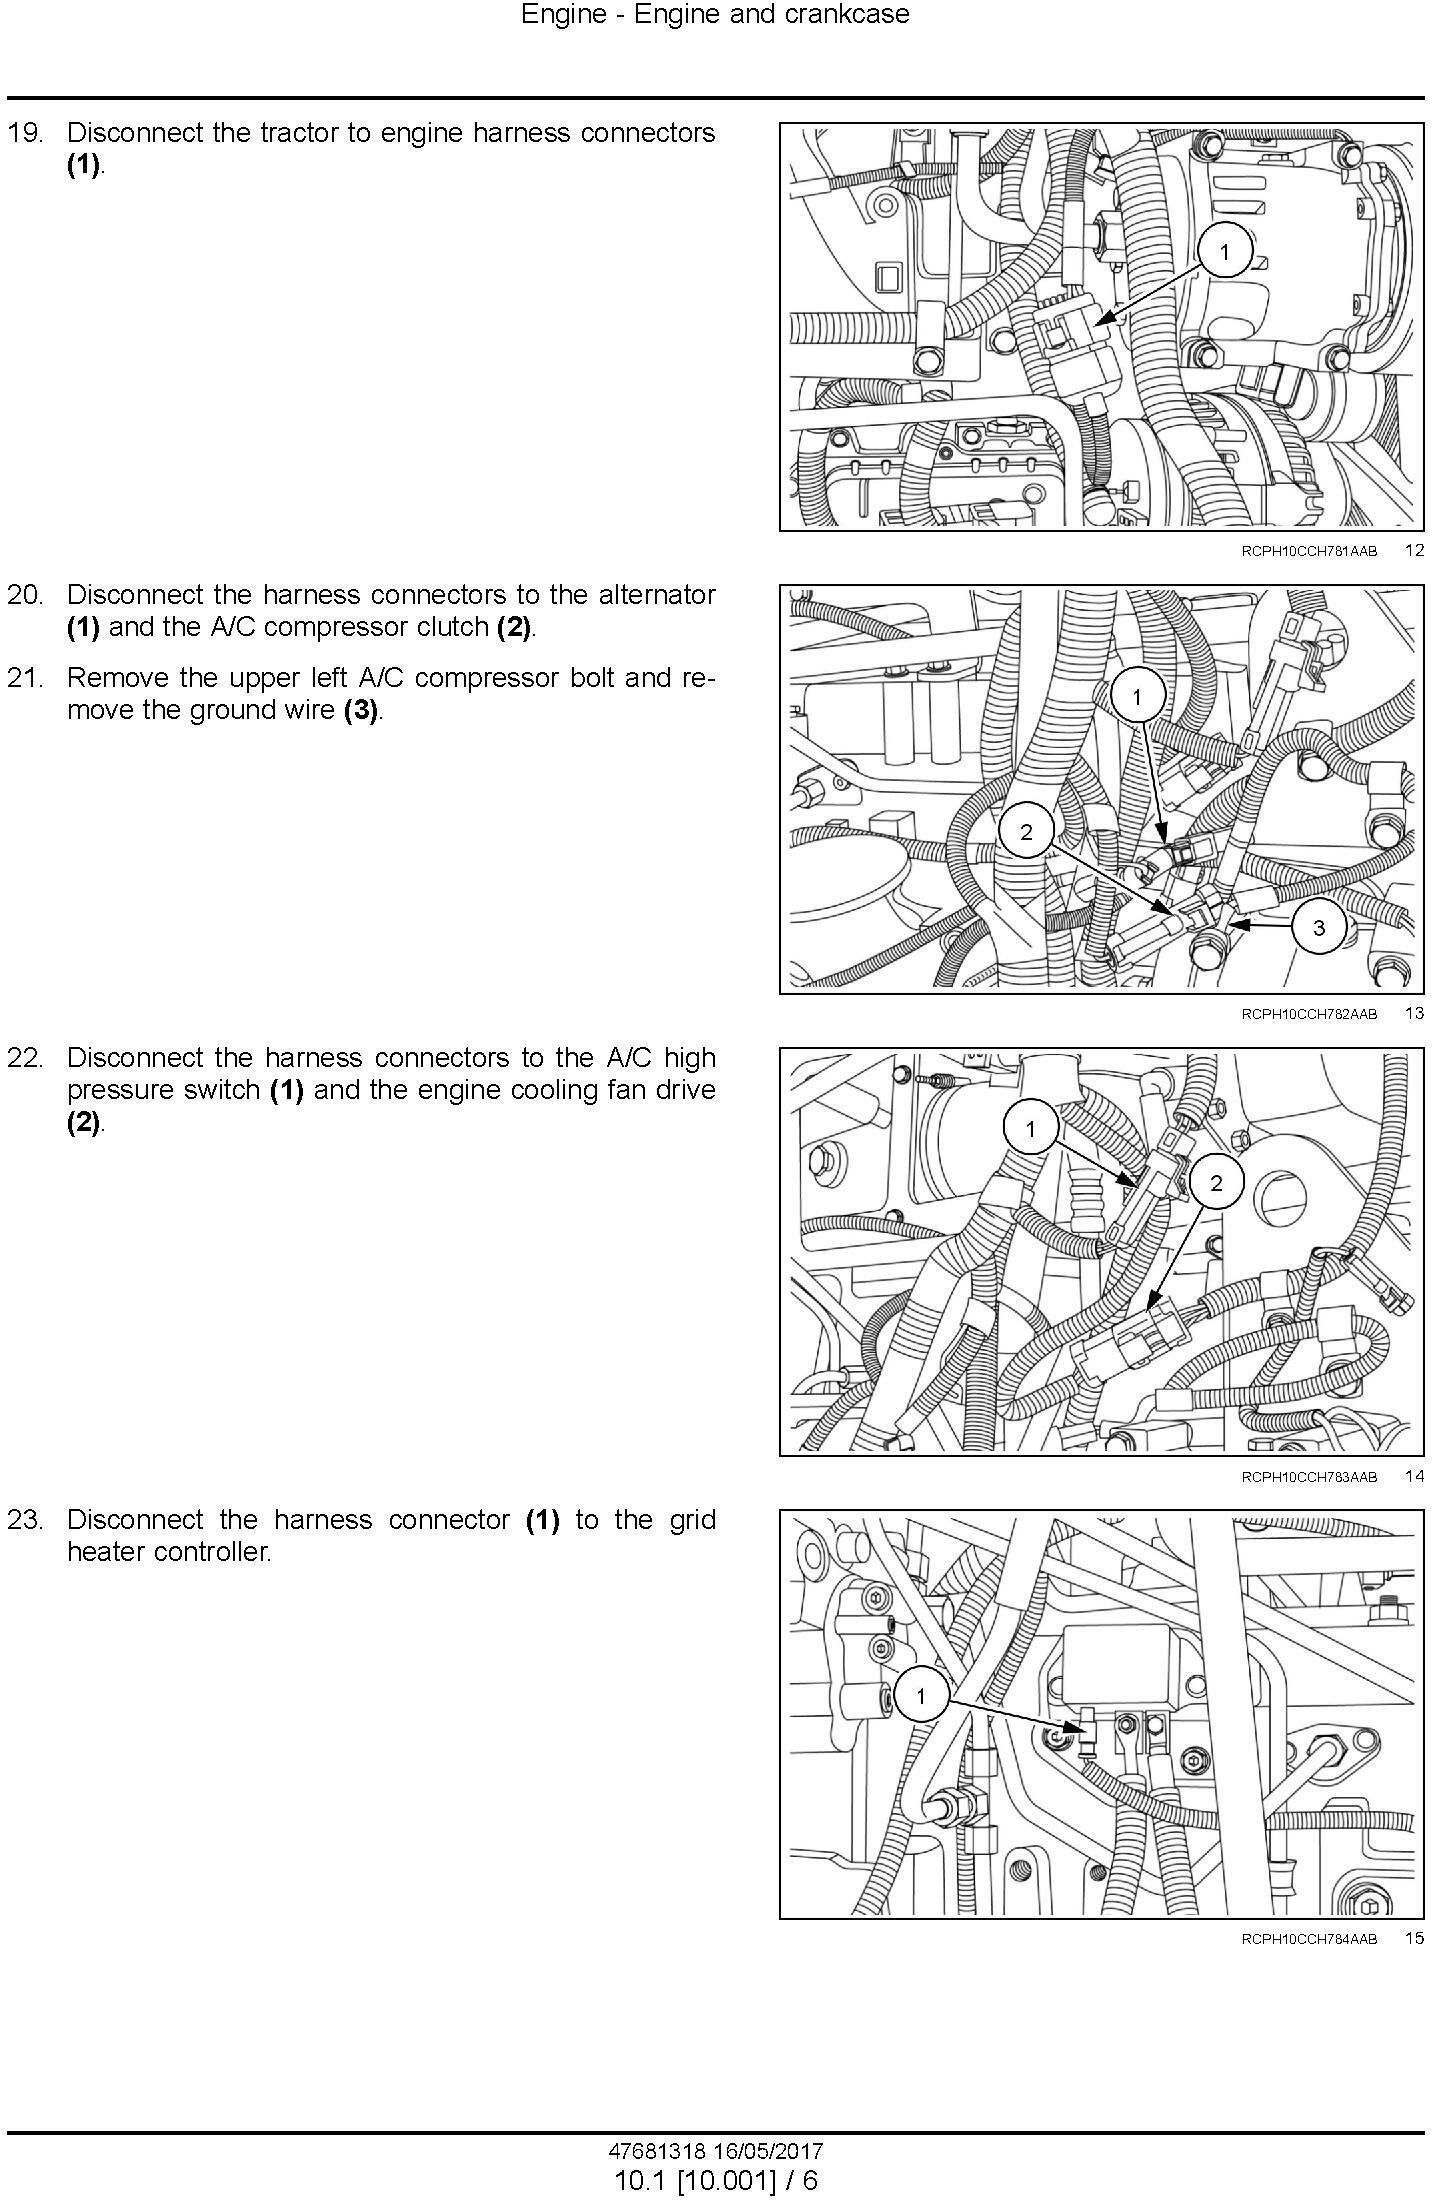 New Holland T8.295, T8.325, T8.355, T8.385 Tier 3 Tractor Service Manual (Latin America) - 1